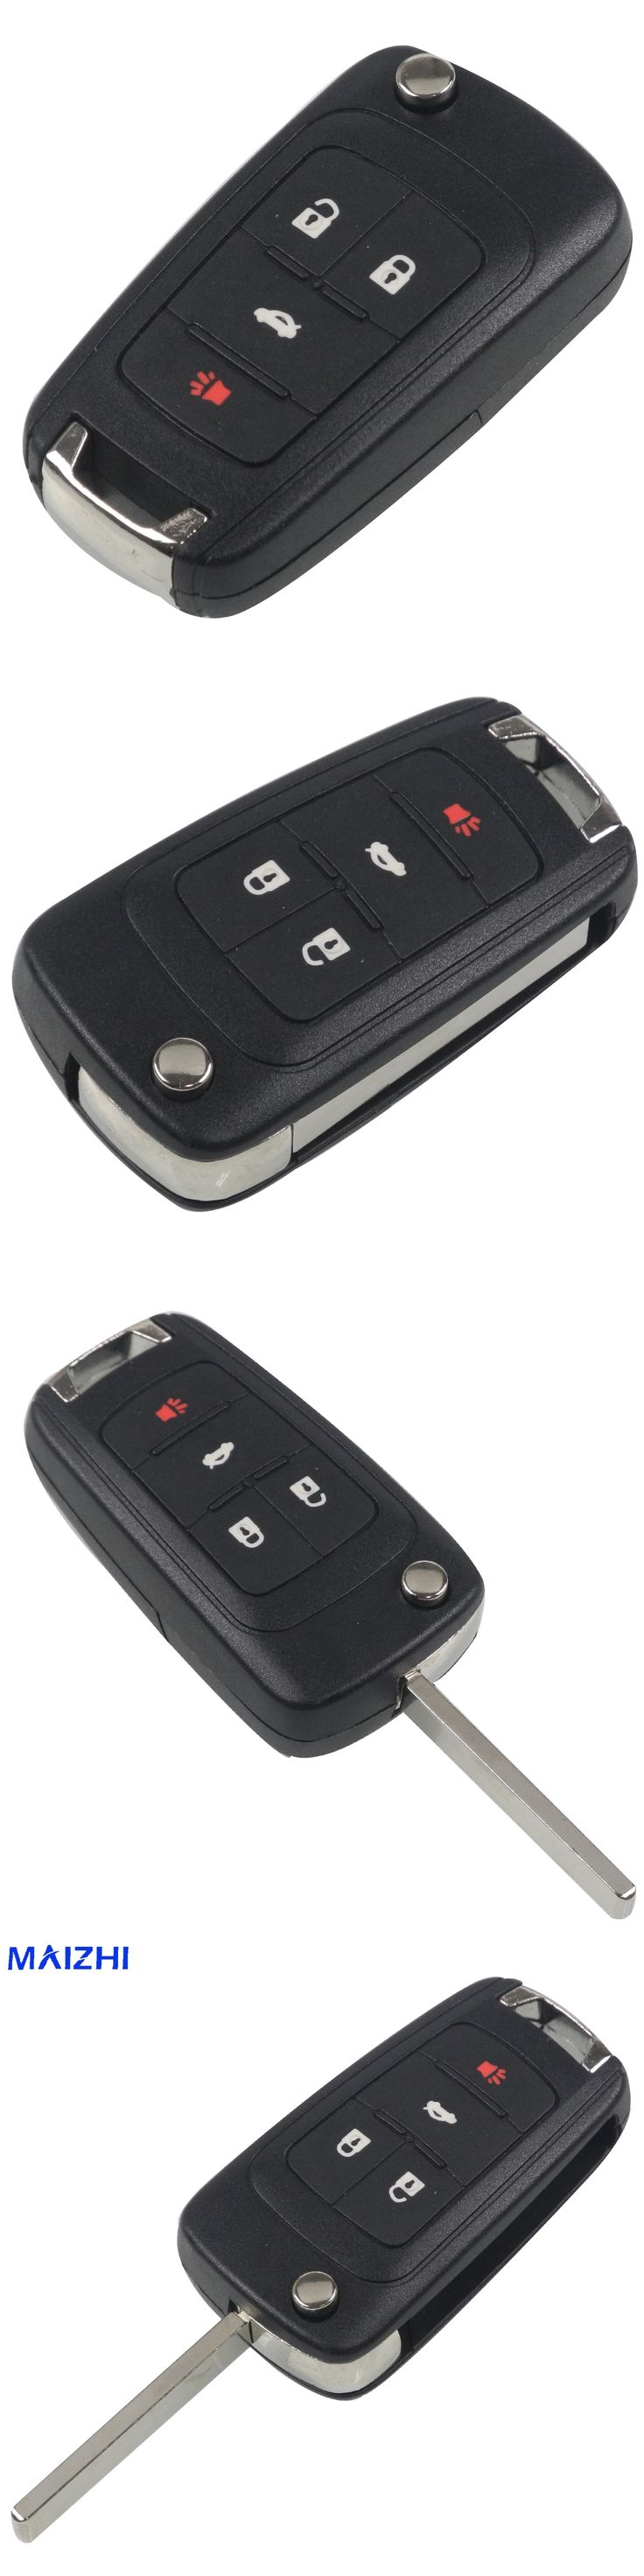 4 Buttons Flip Folding Remote Key Shell Case for GMC for CHEVROLET Malibu Cruze Aveo Car Alarm Housing Keyless Entry Fob Styling